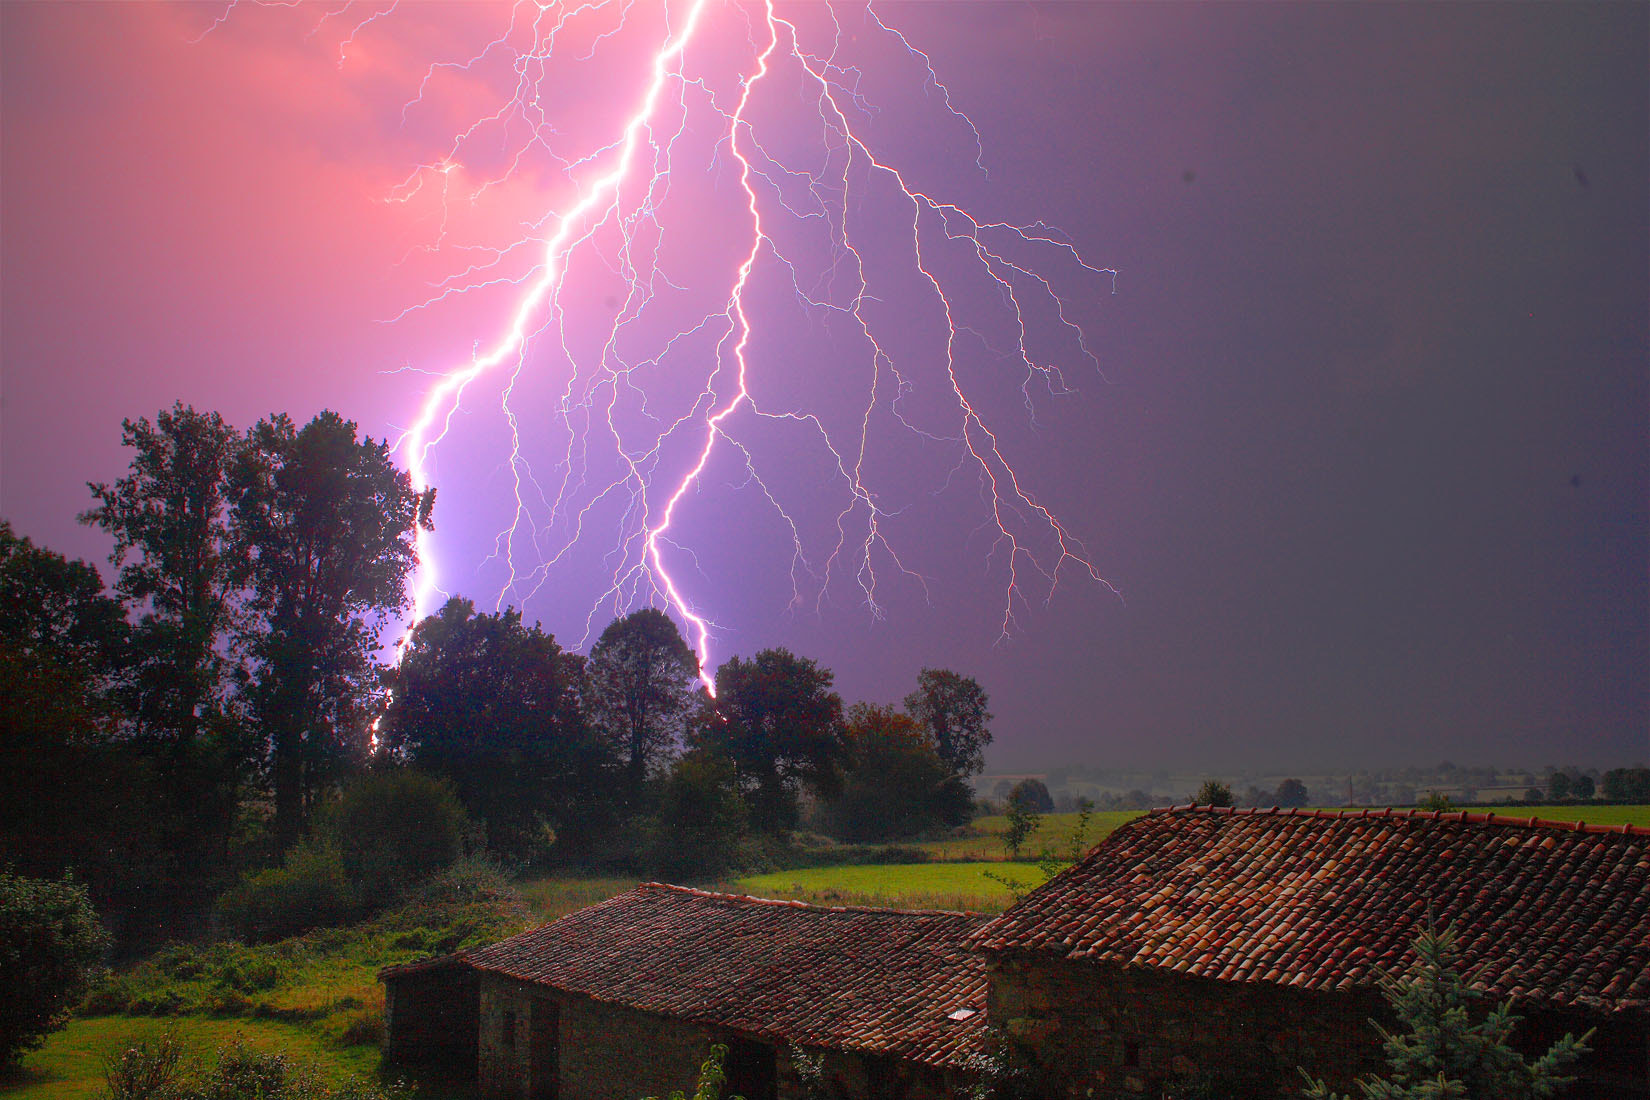 Photograph Lightning by Adam Scott on 500px